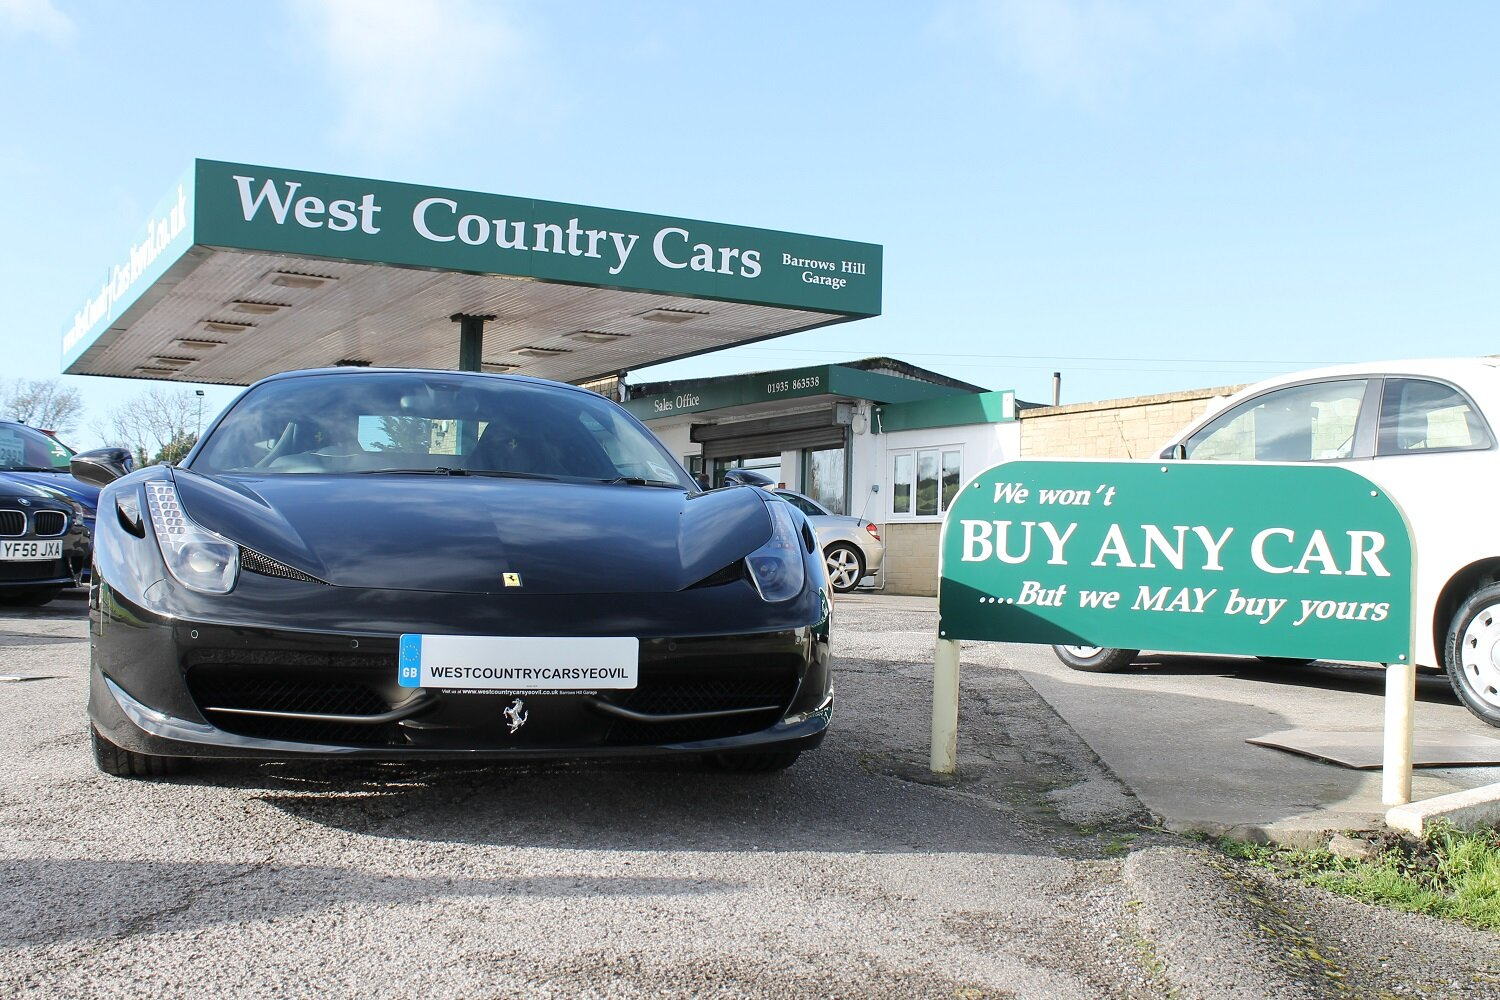 West country cars